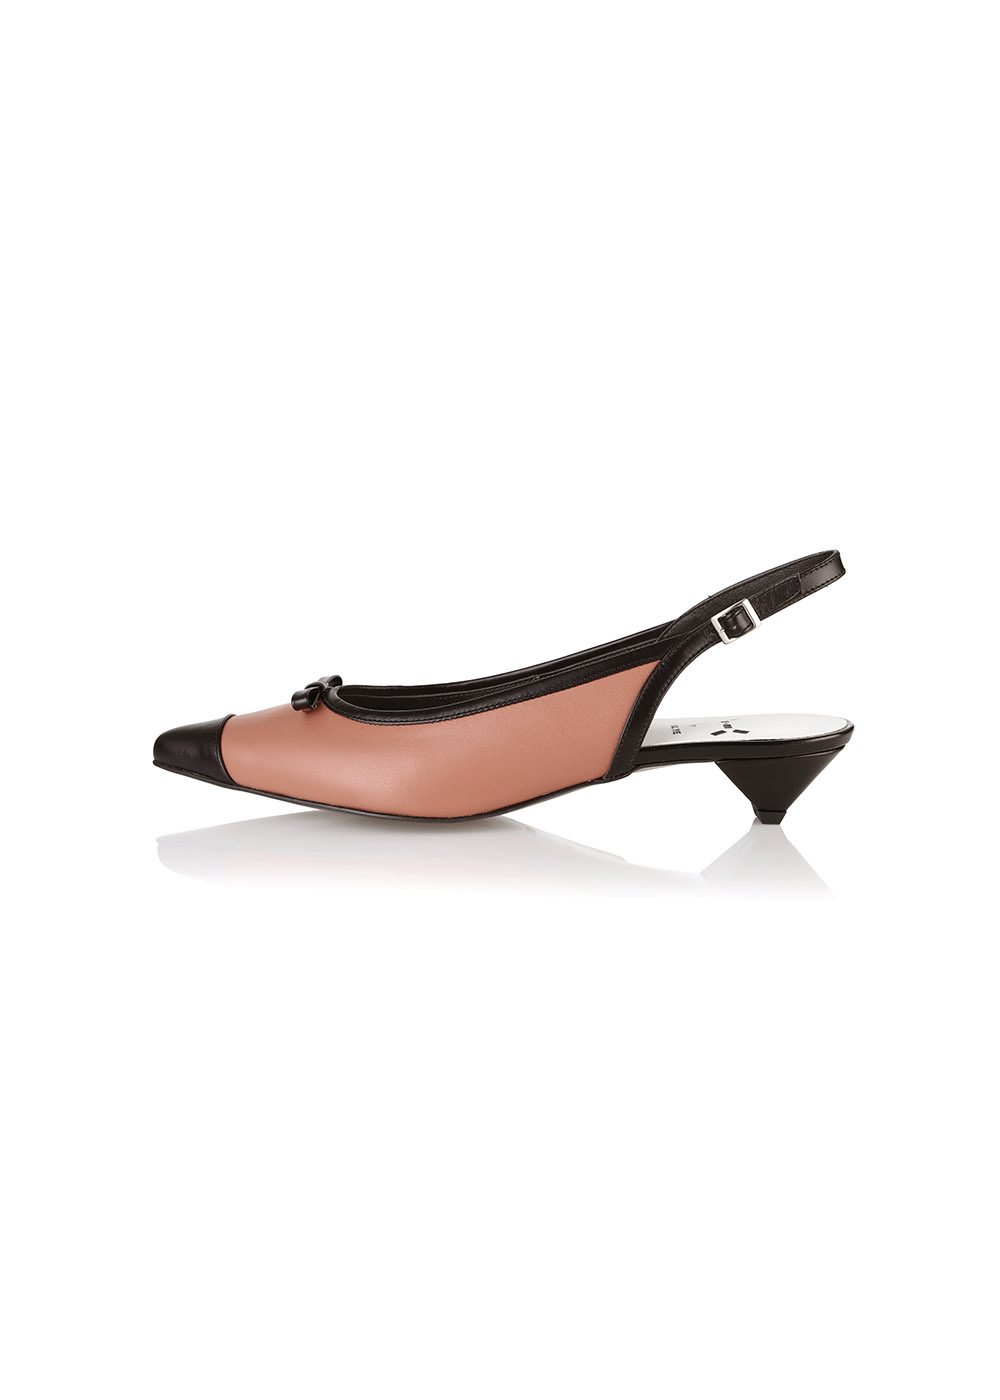 Dazzle Scent Flat Sling-backs / YY8S-S21 / 4 colors